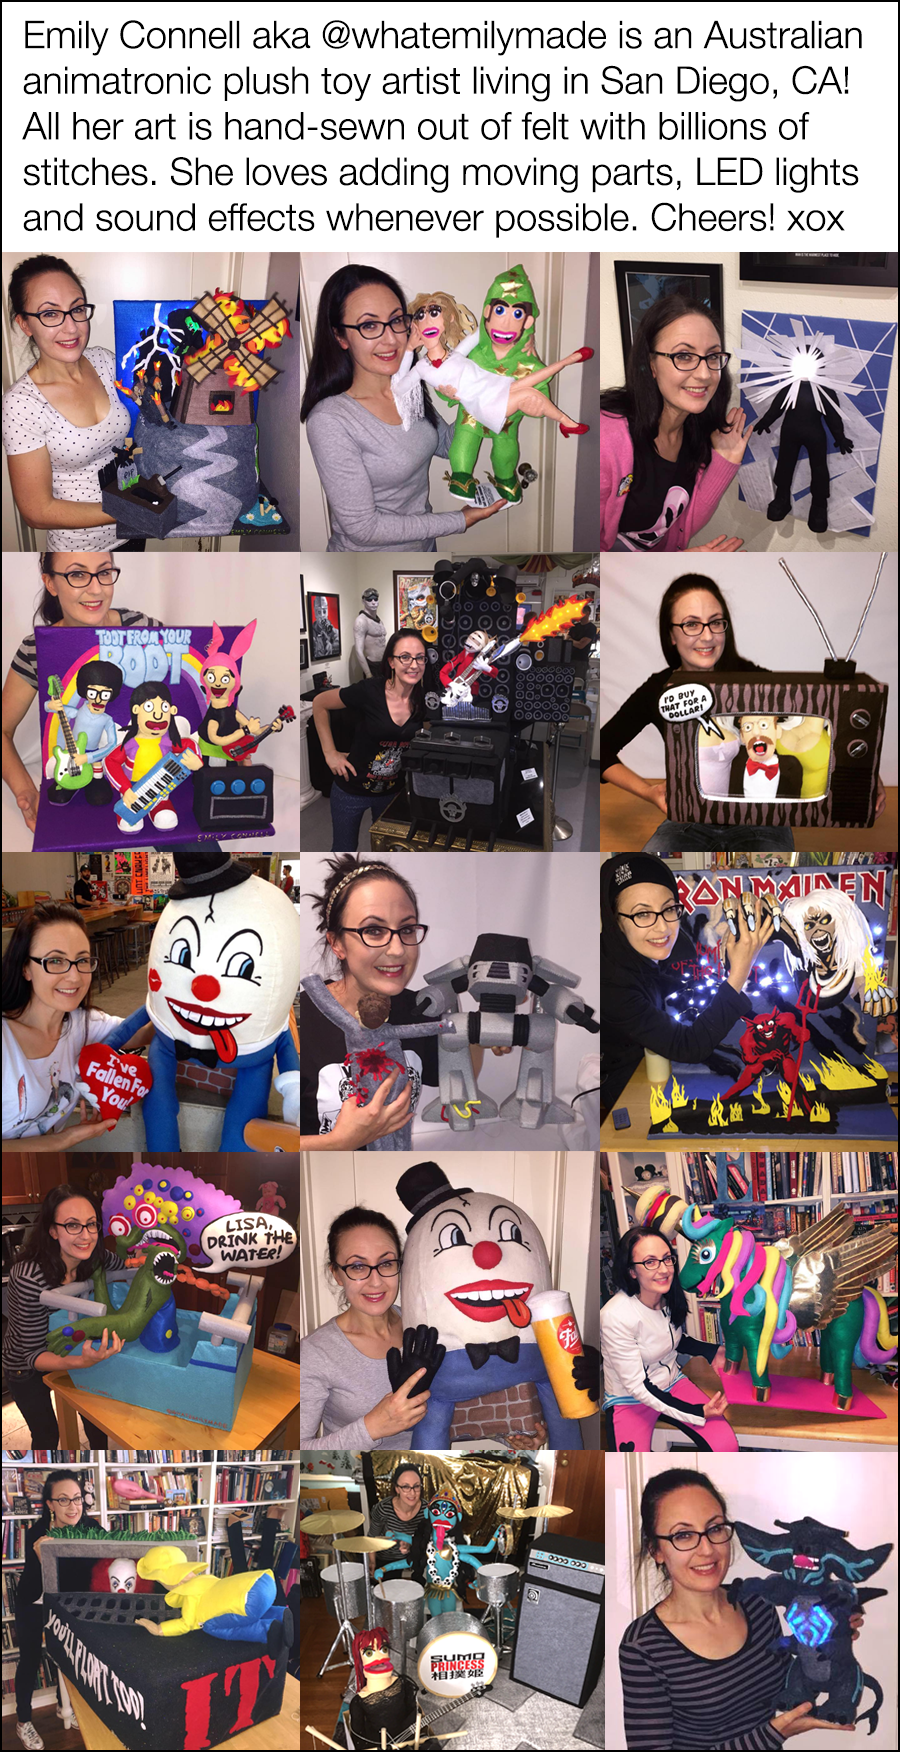 emcollage2.png